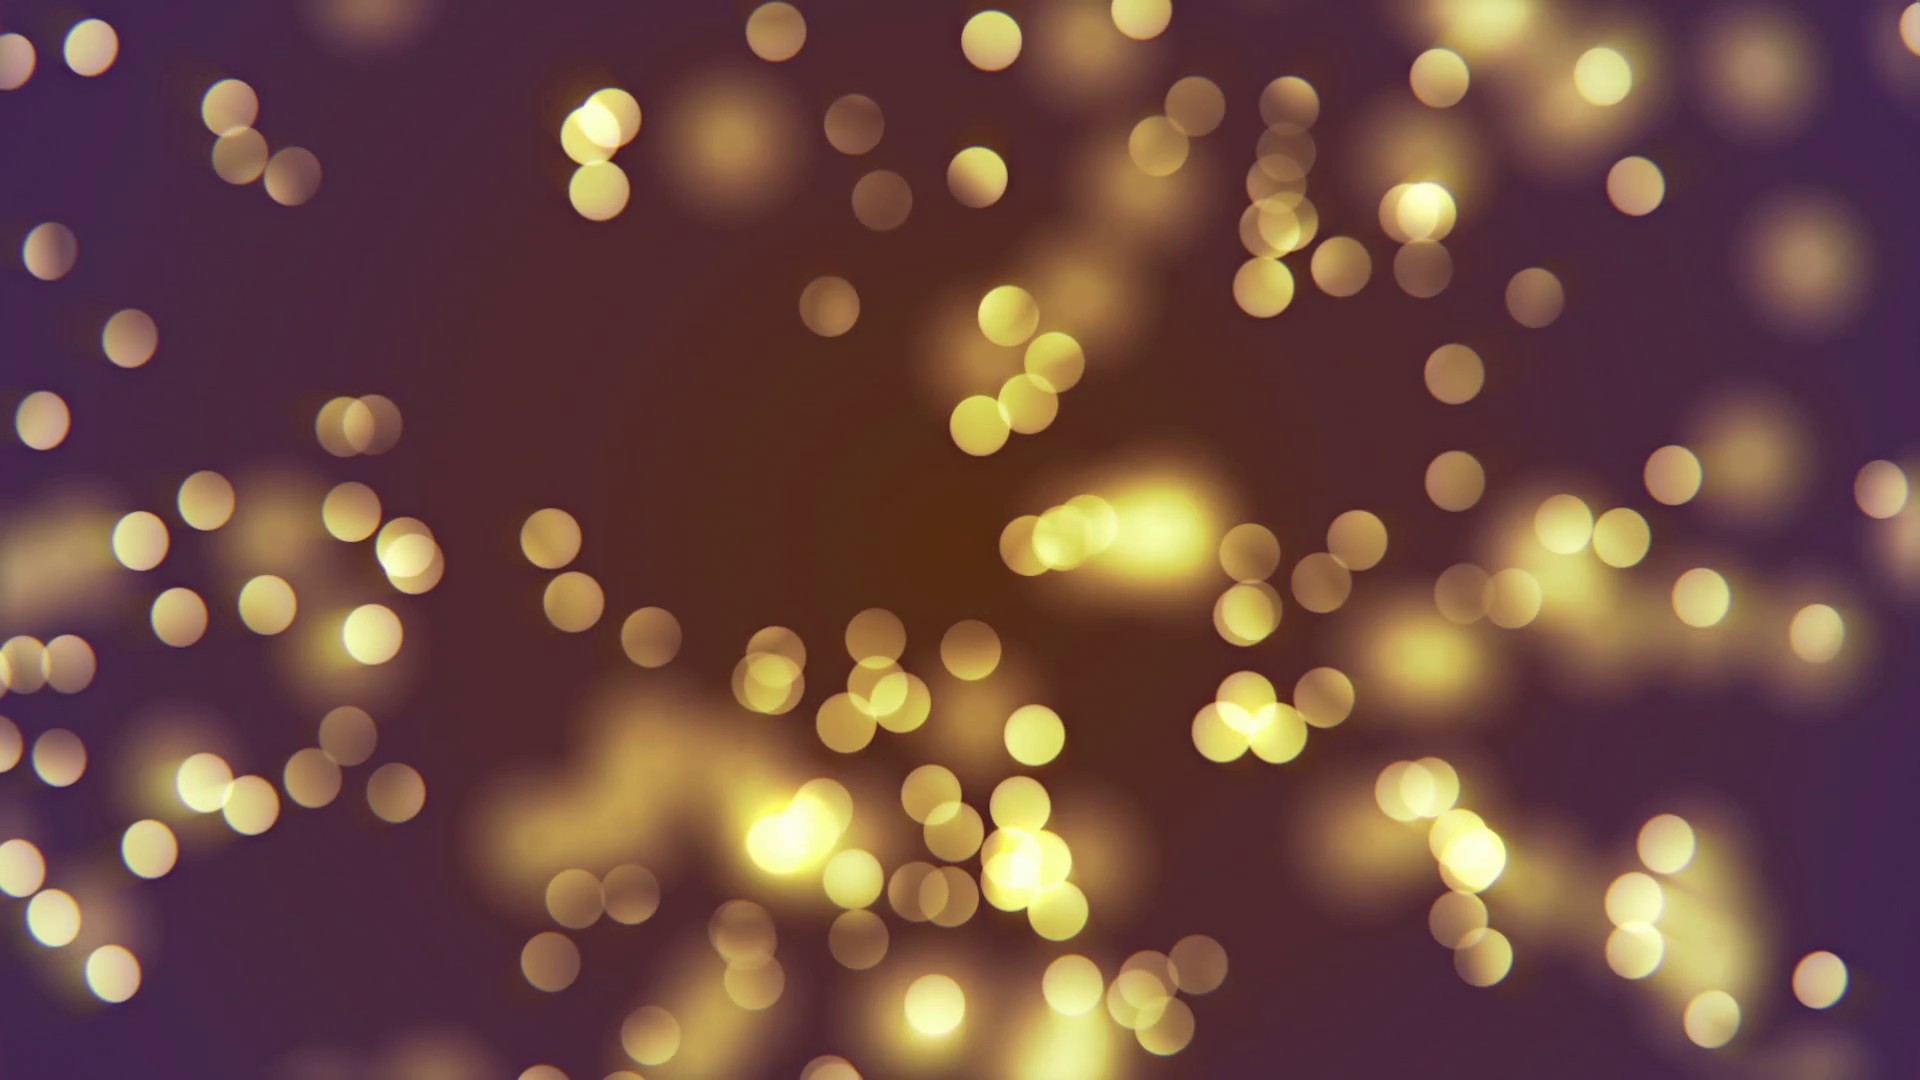 Free photo: Gold Bokeh - Gold, Graphic, Abstract - Free Download